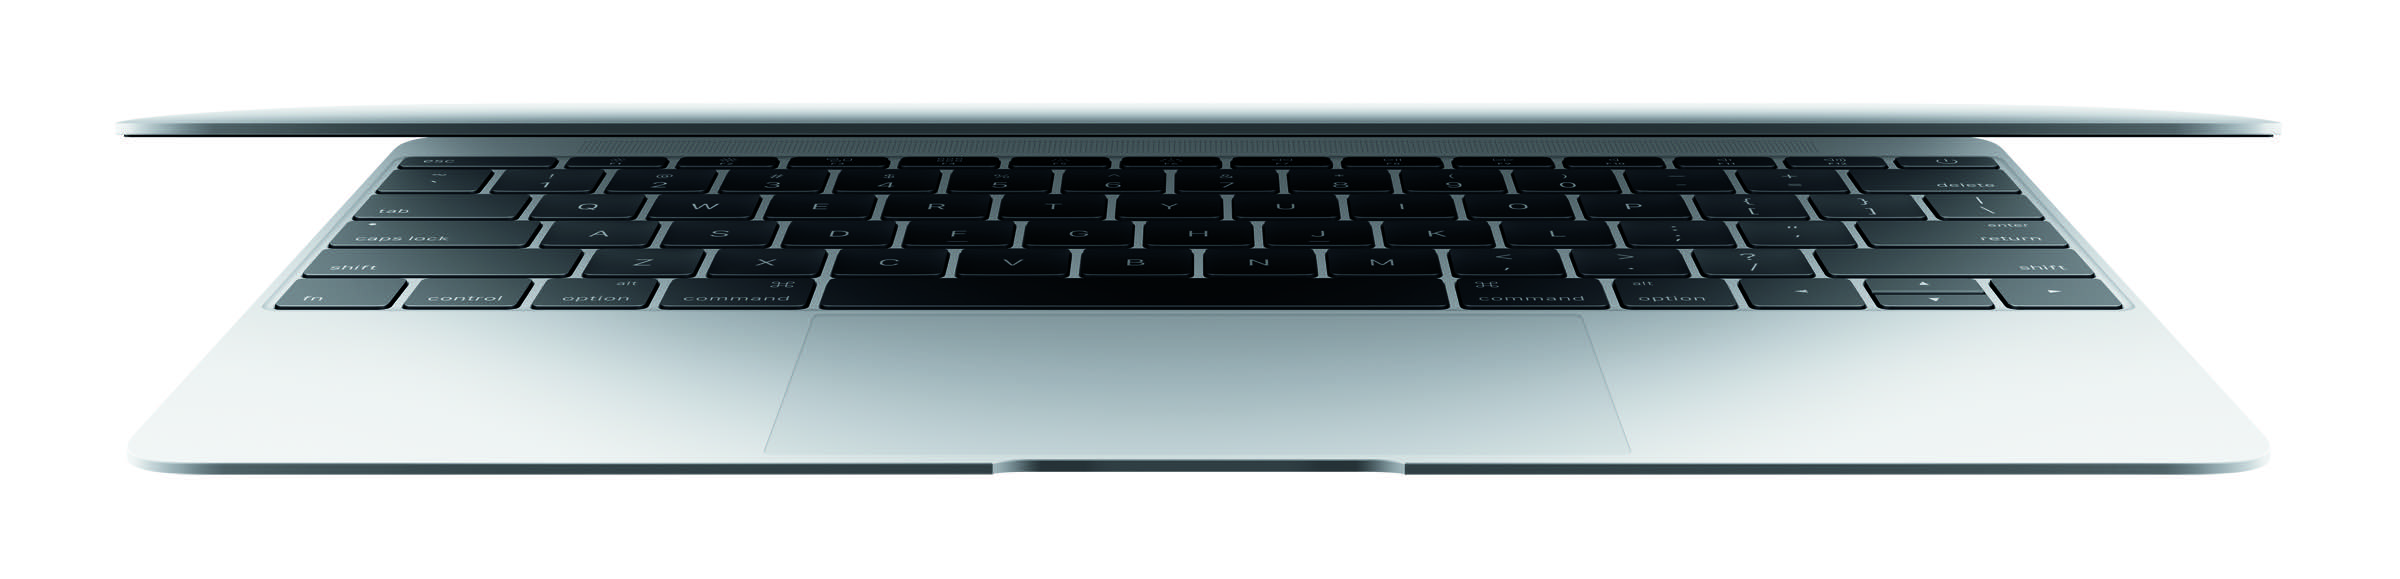 Sorry Apple Watch, but the new MacBook was the star of this week's 'Spring Forward' event